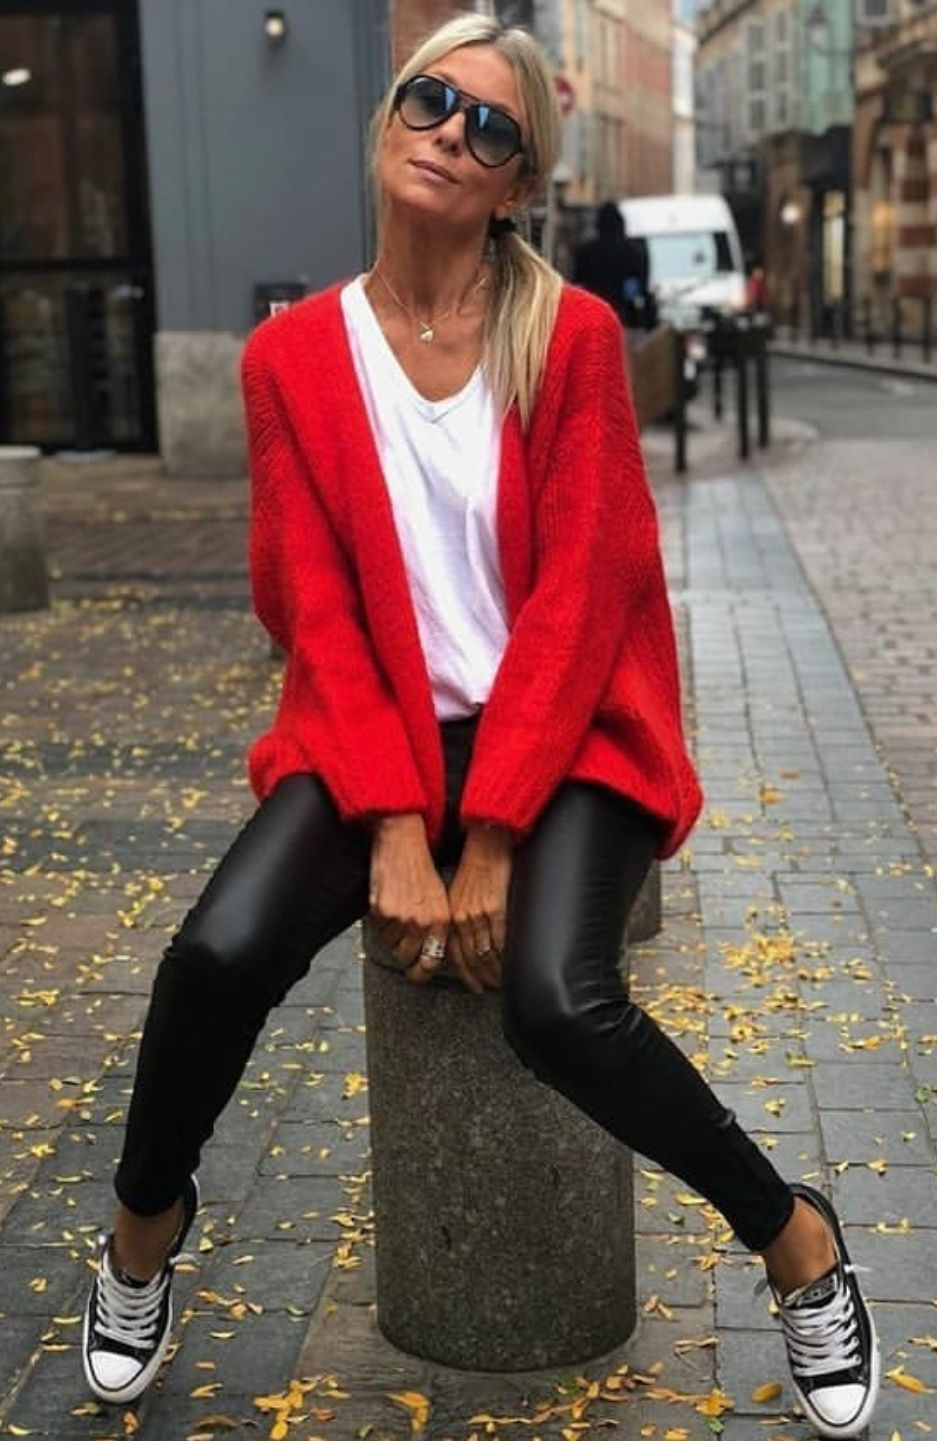 Photo of Leggings piel, camiseta blanca, chaqueta roja og alle stjerner